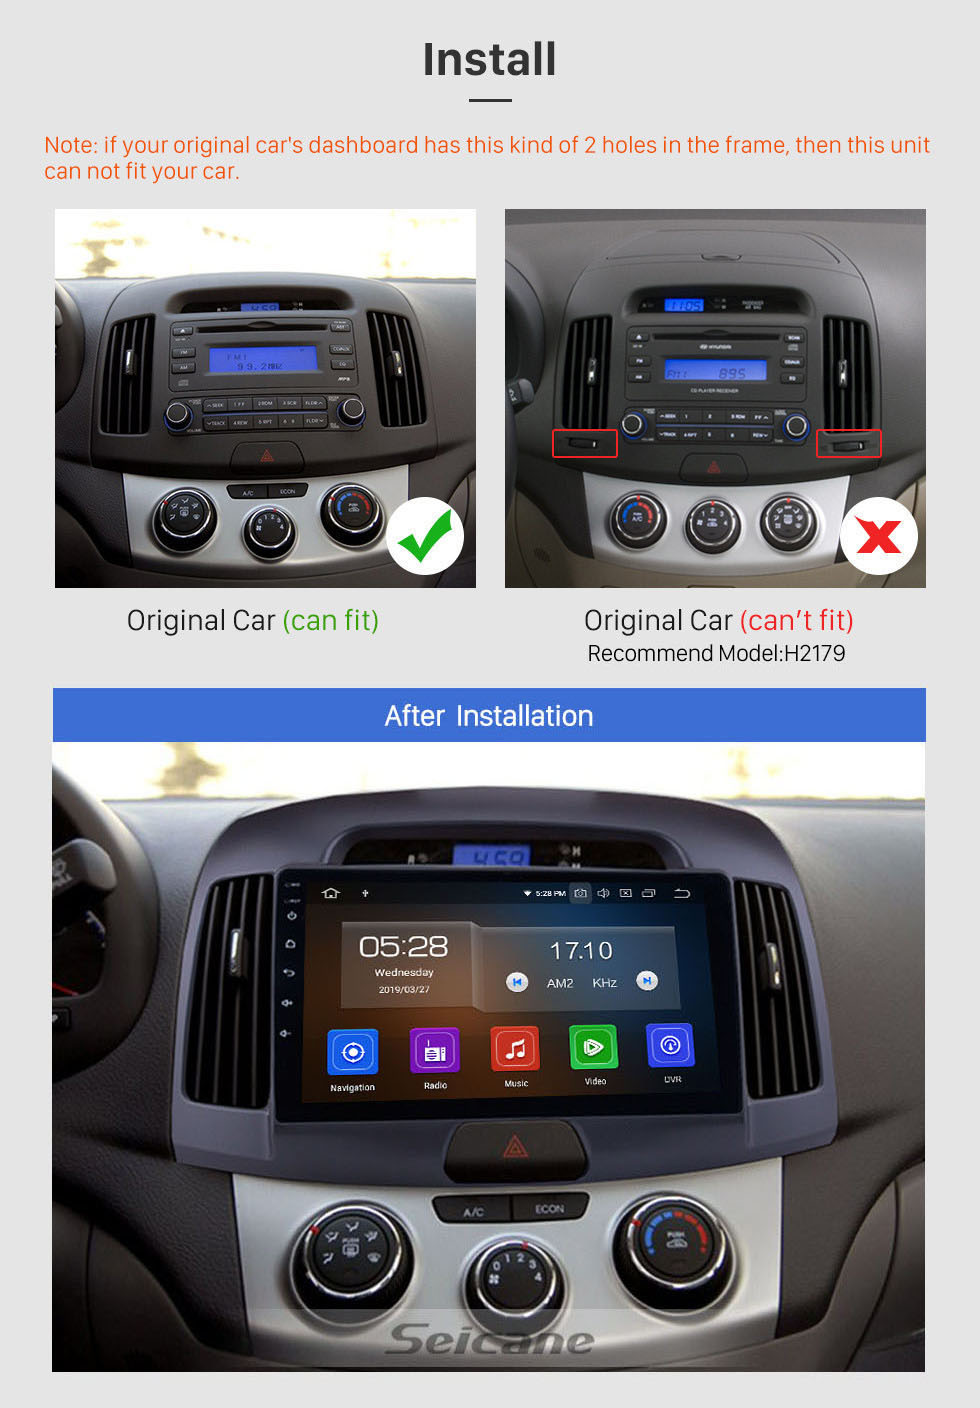 Seicane Aftermarket Android 10.0 GPS Navigation System for 2007-2011 HYUNDAI ELANTRA Radio Upgrade Bluetooth Music Touch Screen Stereo WiFi Mirror Link Steering Wheel Control support 3G DVD Player